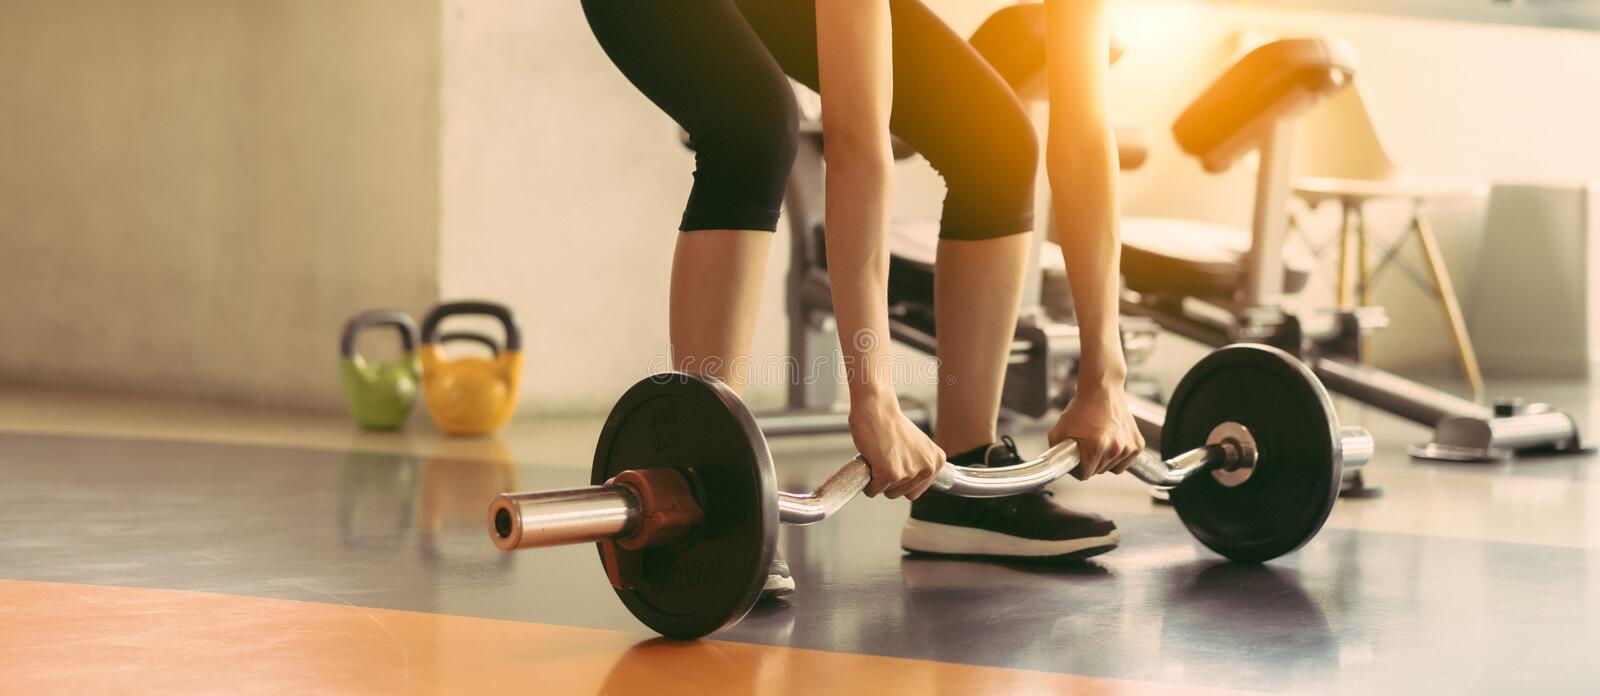 Woman exercise workout at gym fitness training sport with barbell weight stock photos